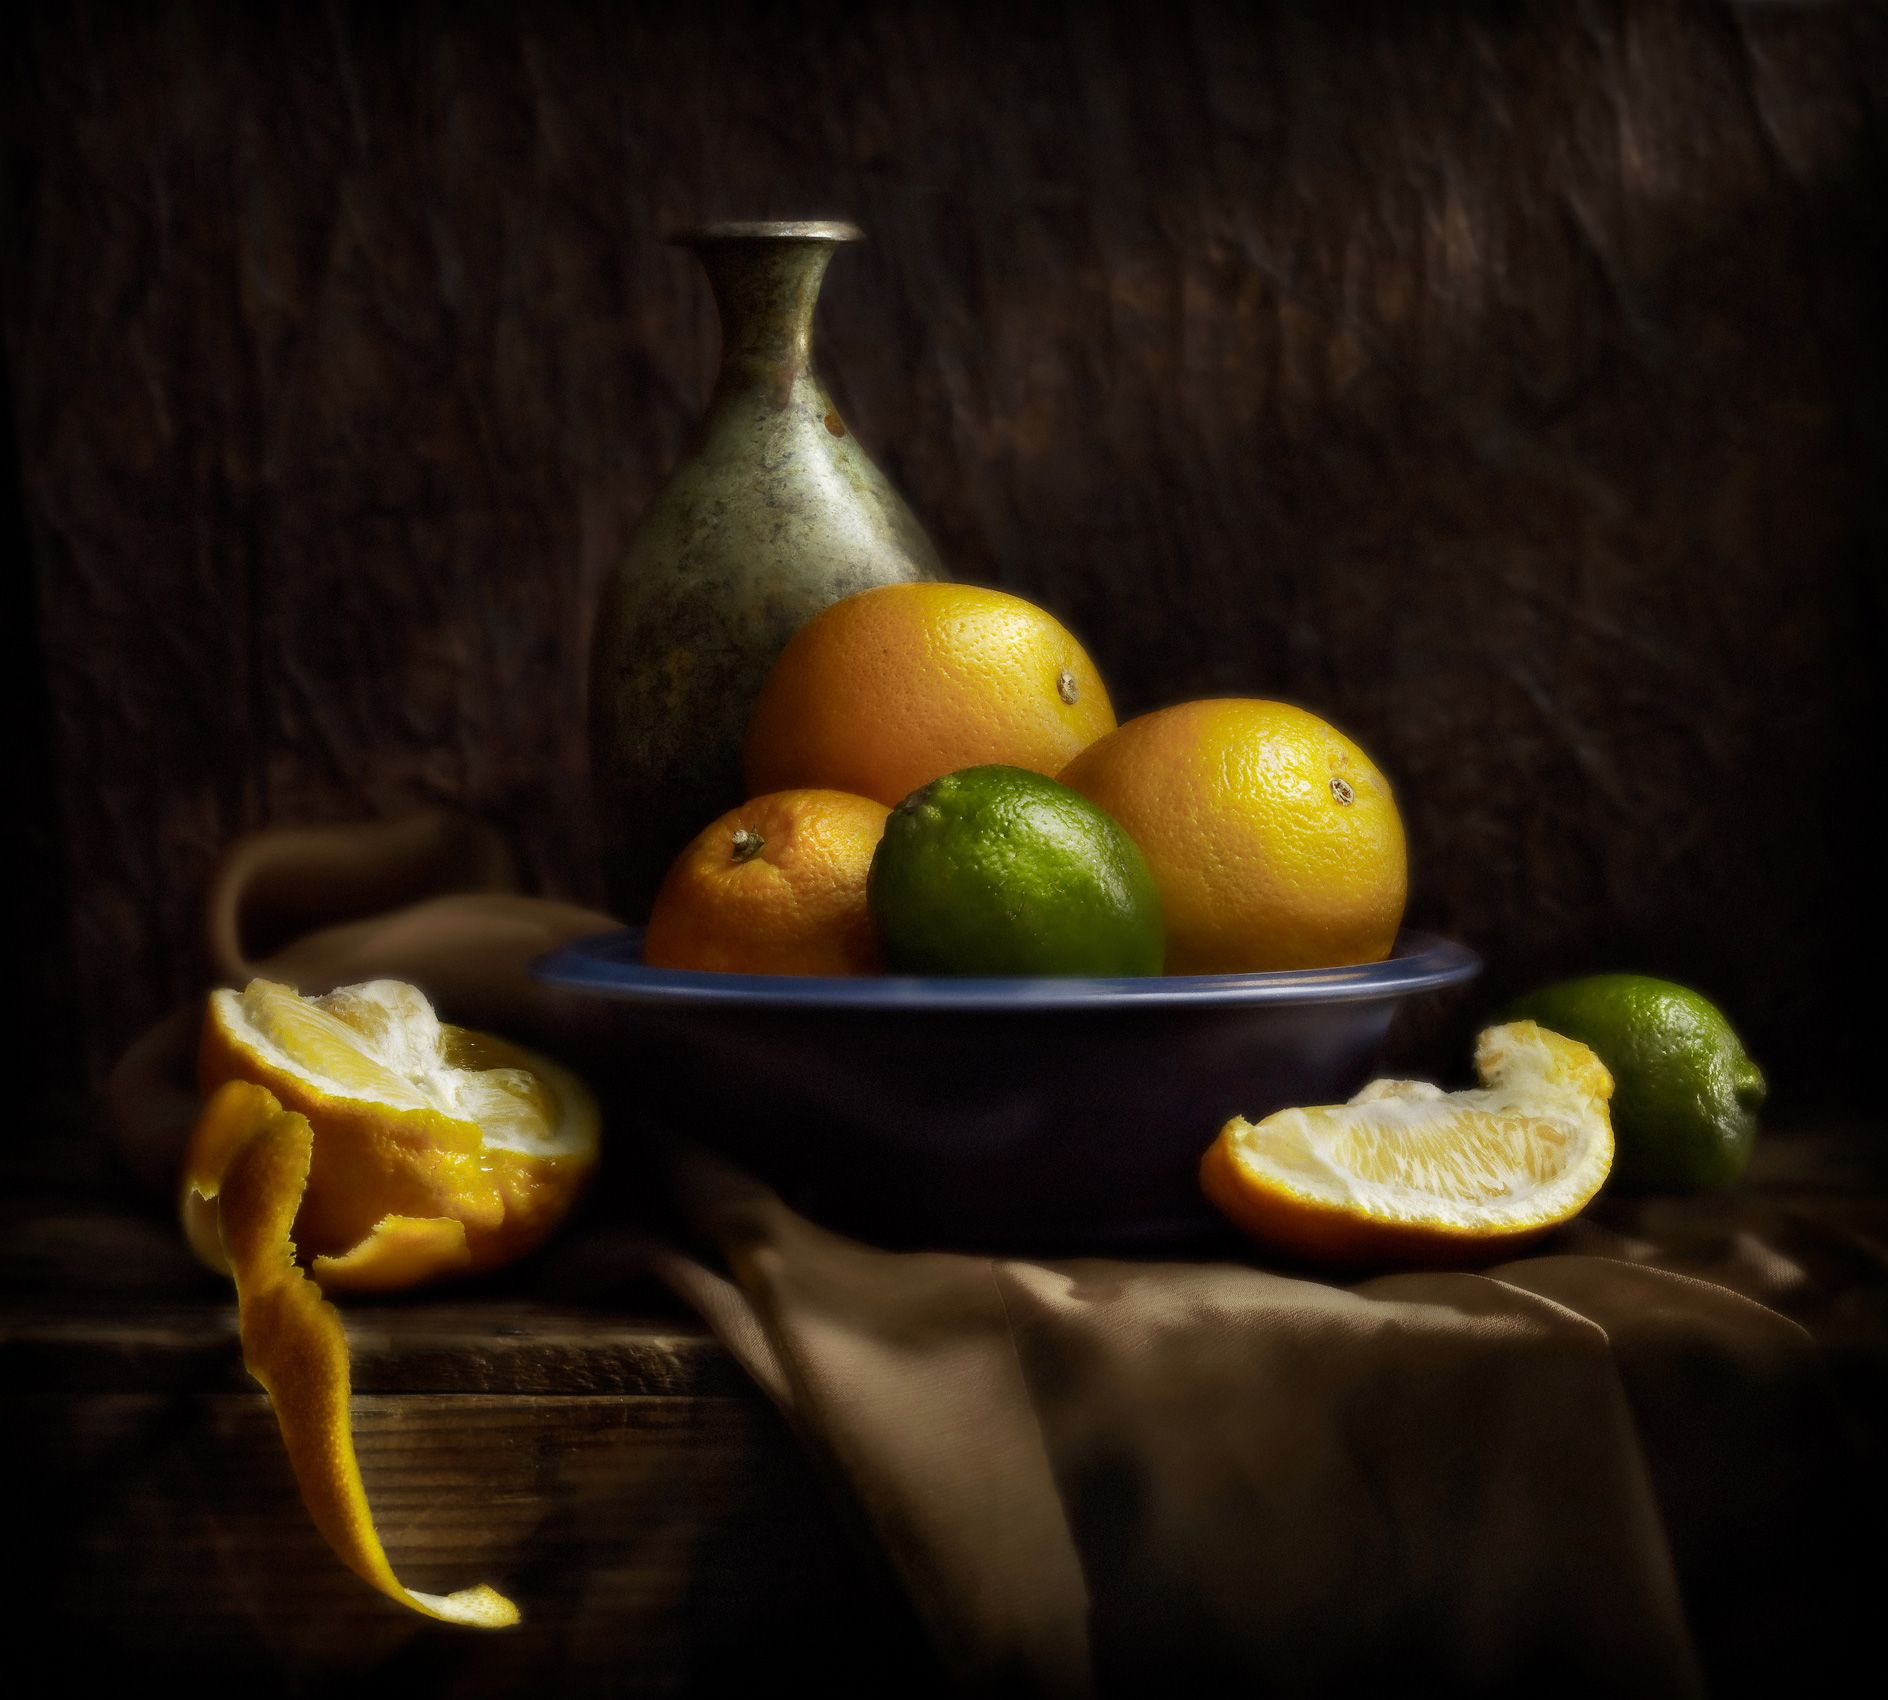 Still Life With Oranges by Harold Ross